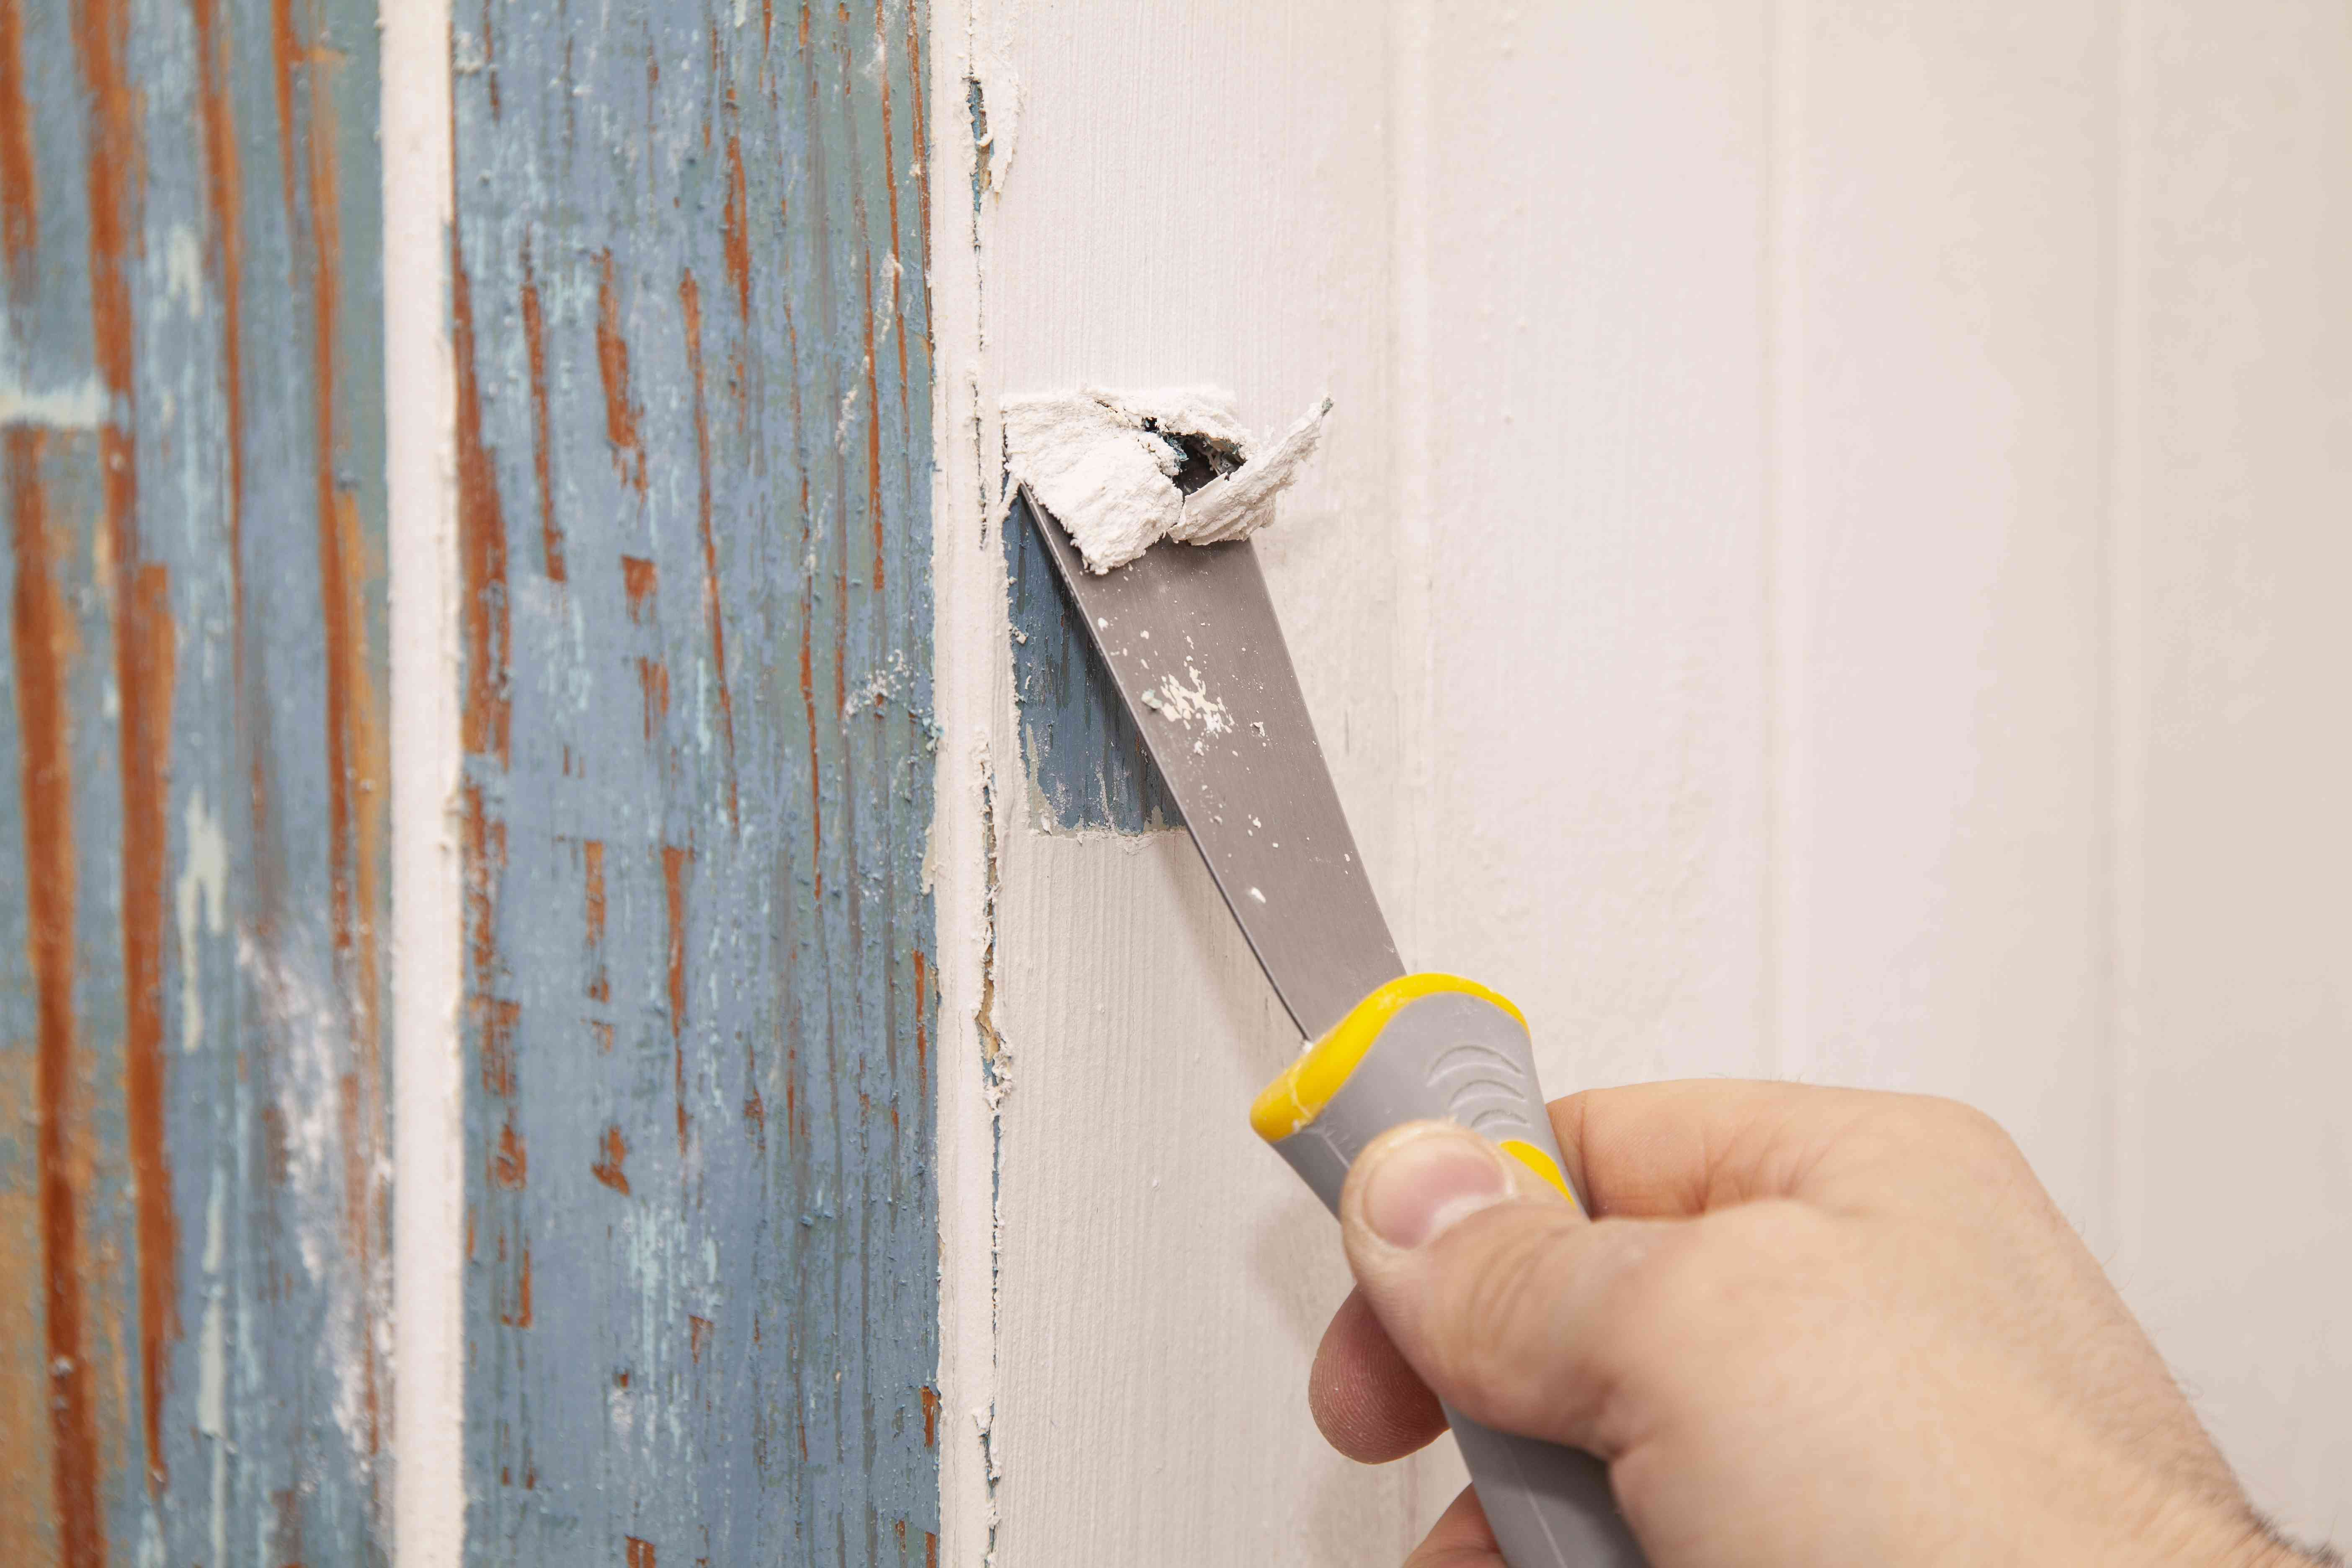 Scraping paint off a wall